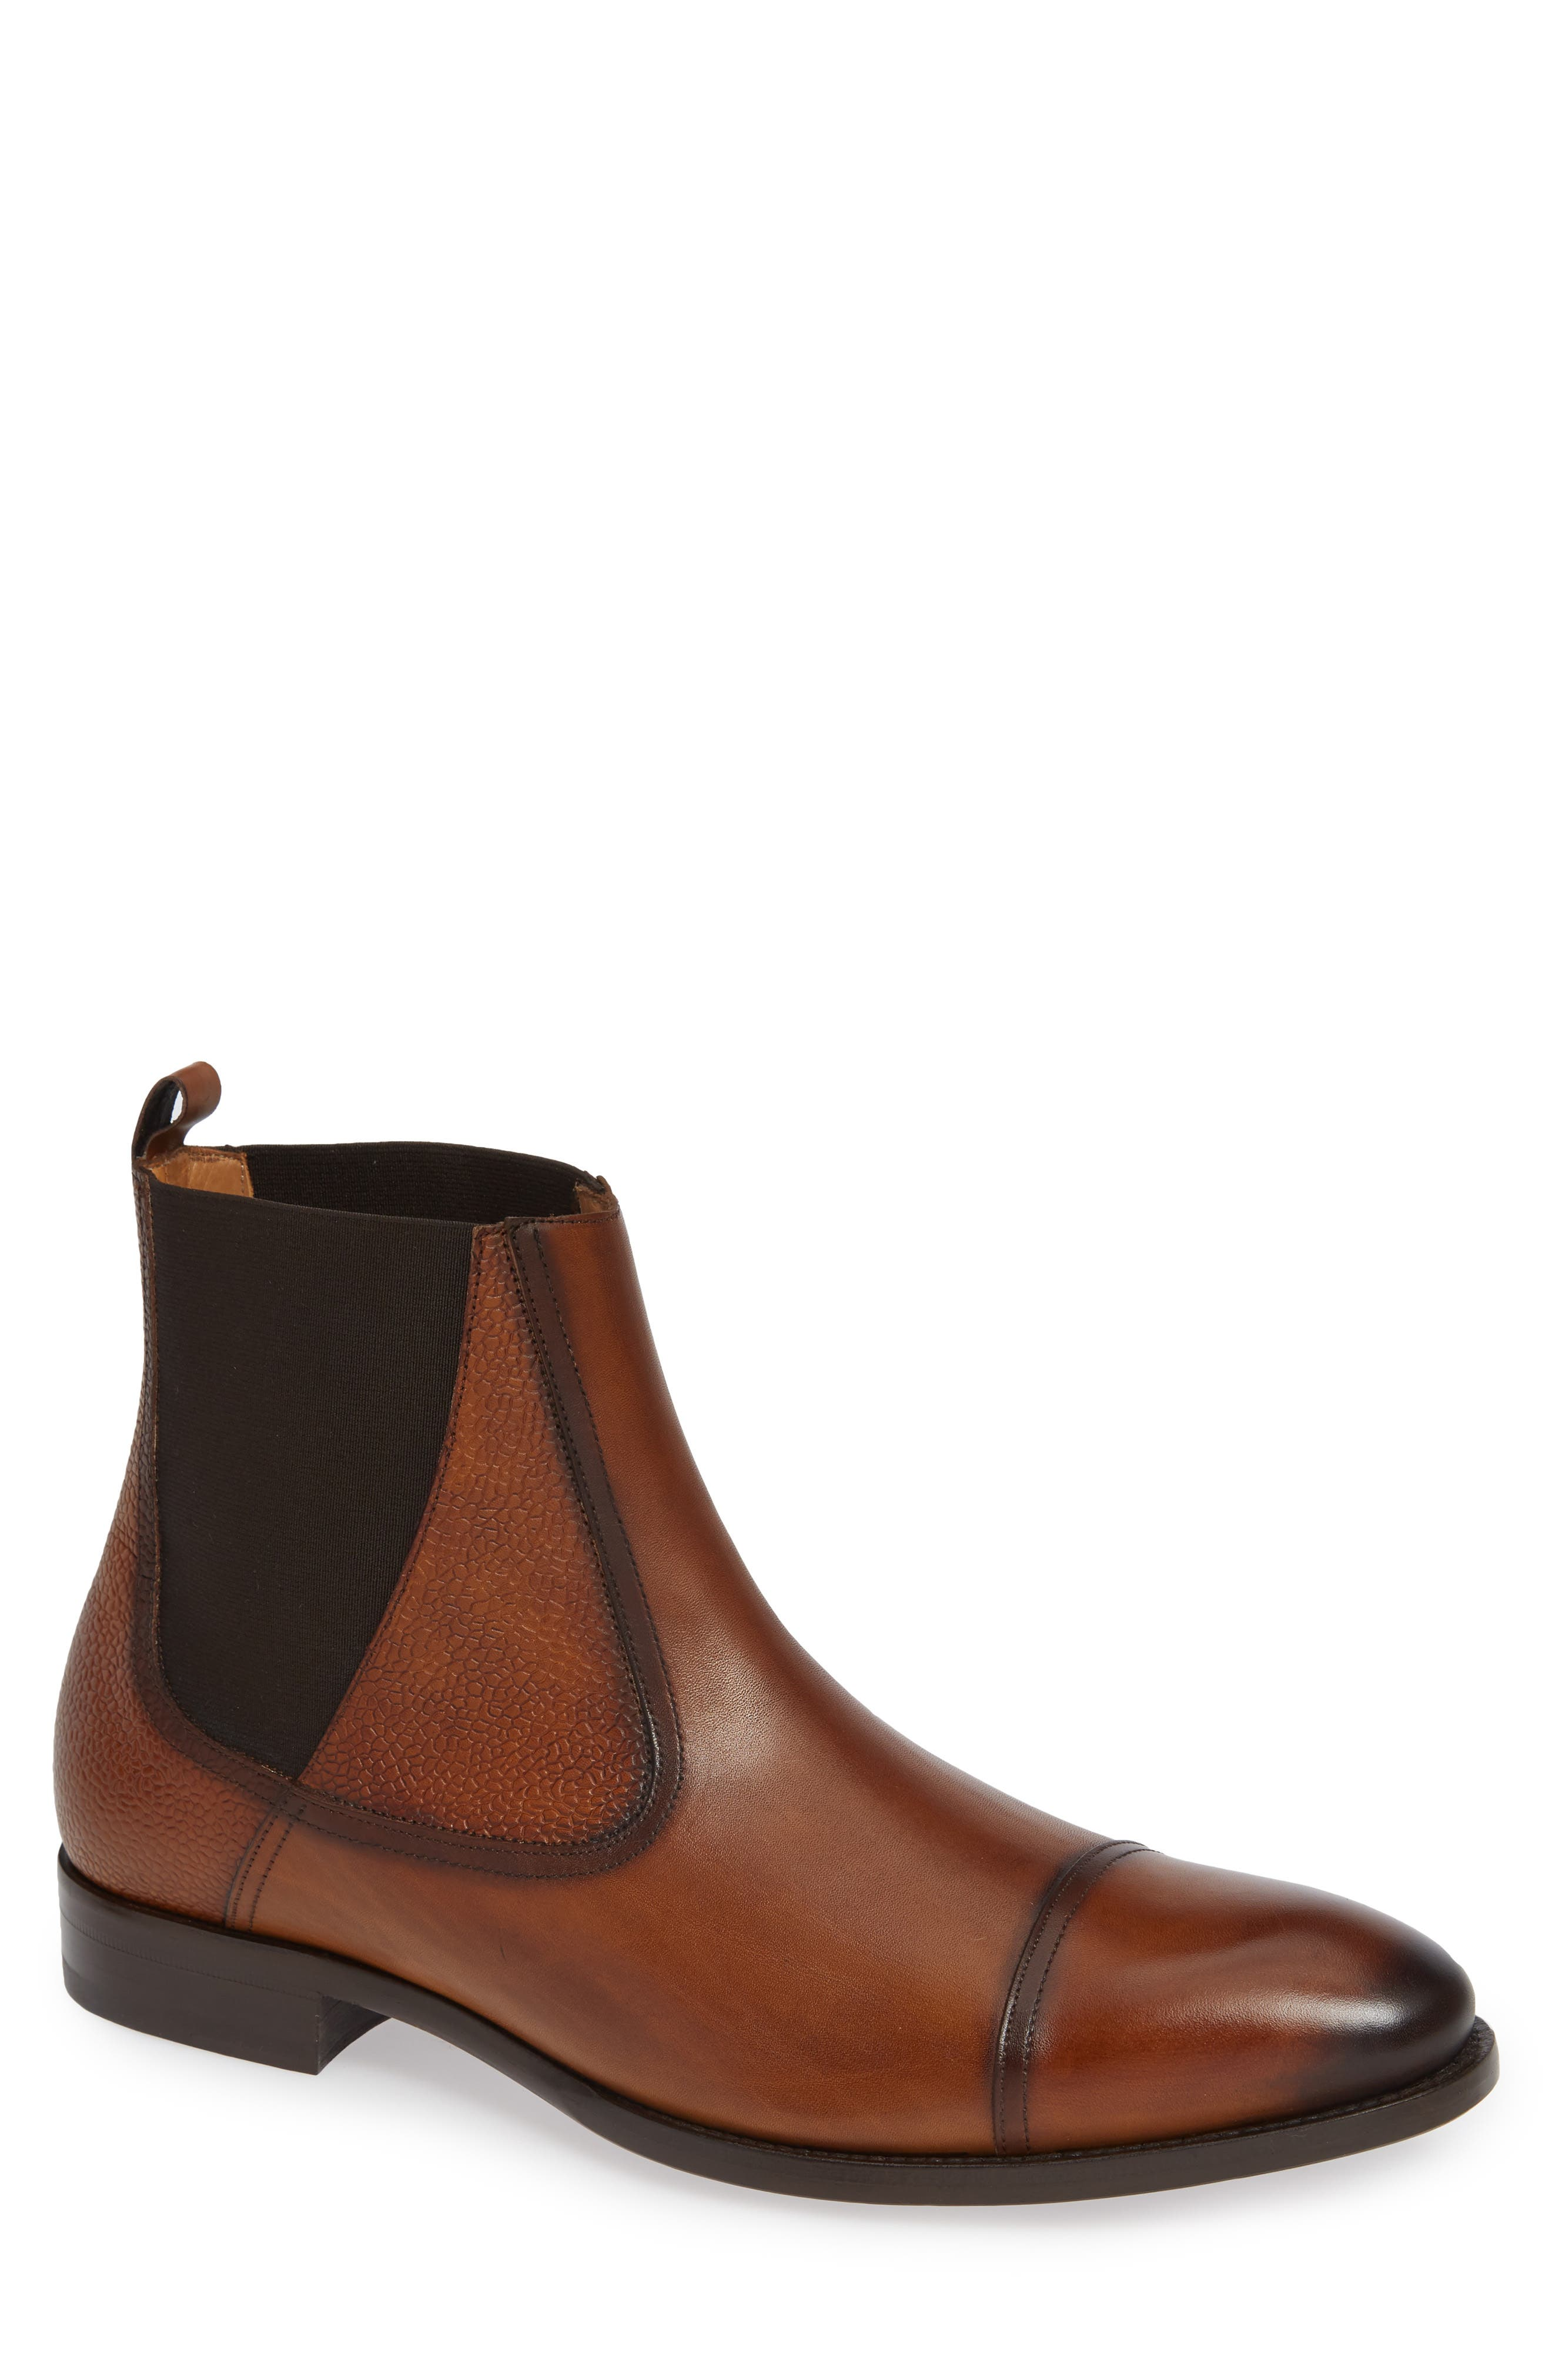 Mezlan Higgins Cap Toe Chelsea Boot, Brown